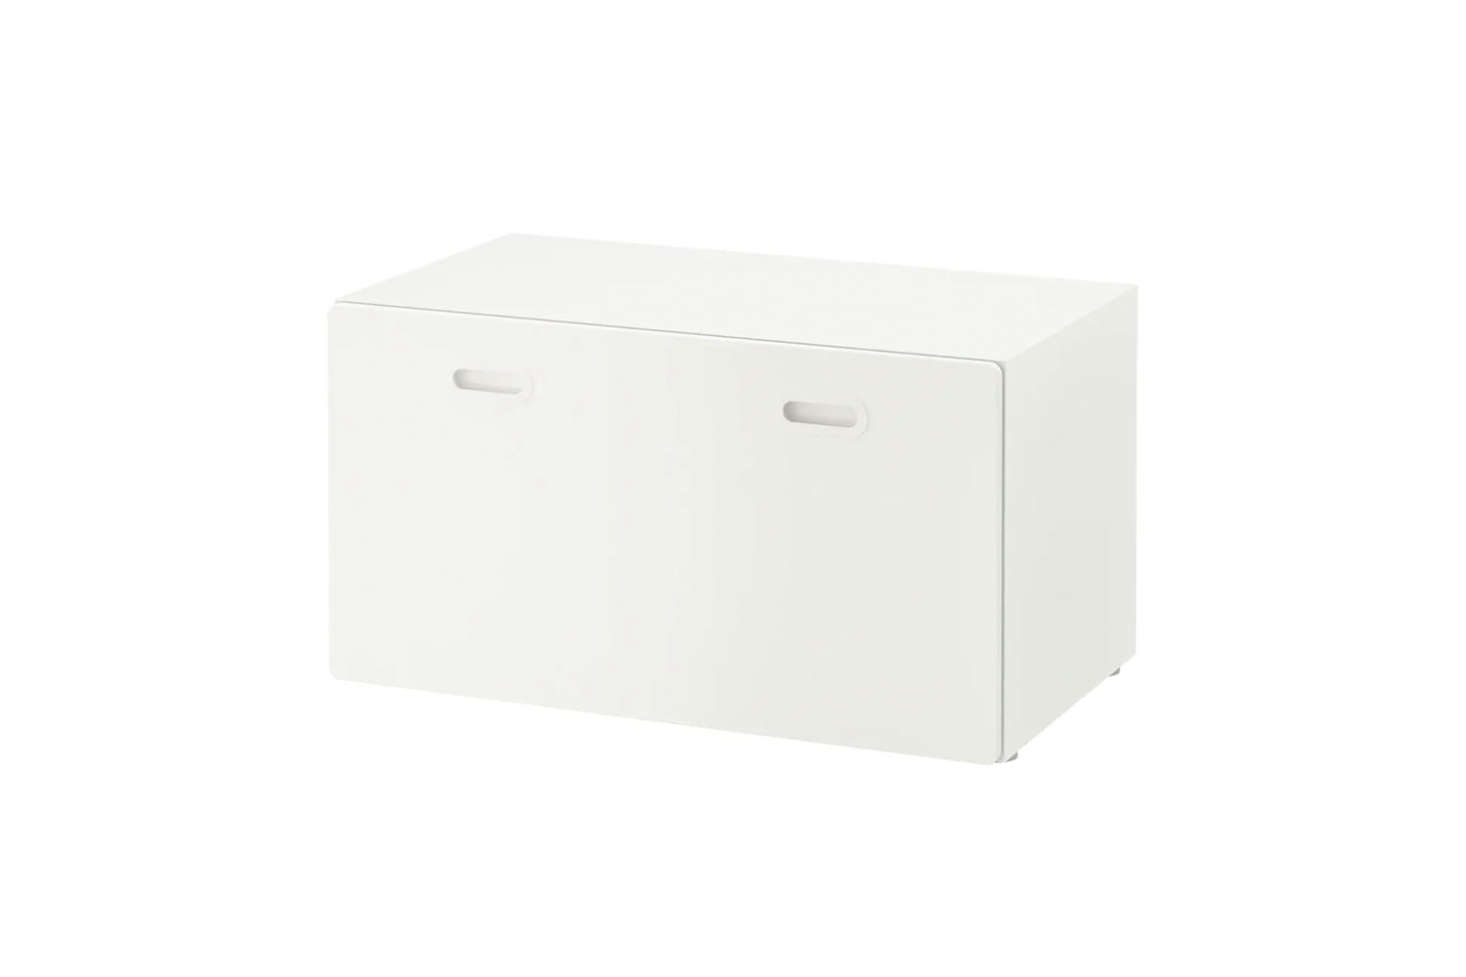 The Stuva/Fritids Bench with Toy Storage in White is $79. Our Contributing Editor Izabella Simmons designed her kids&#8